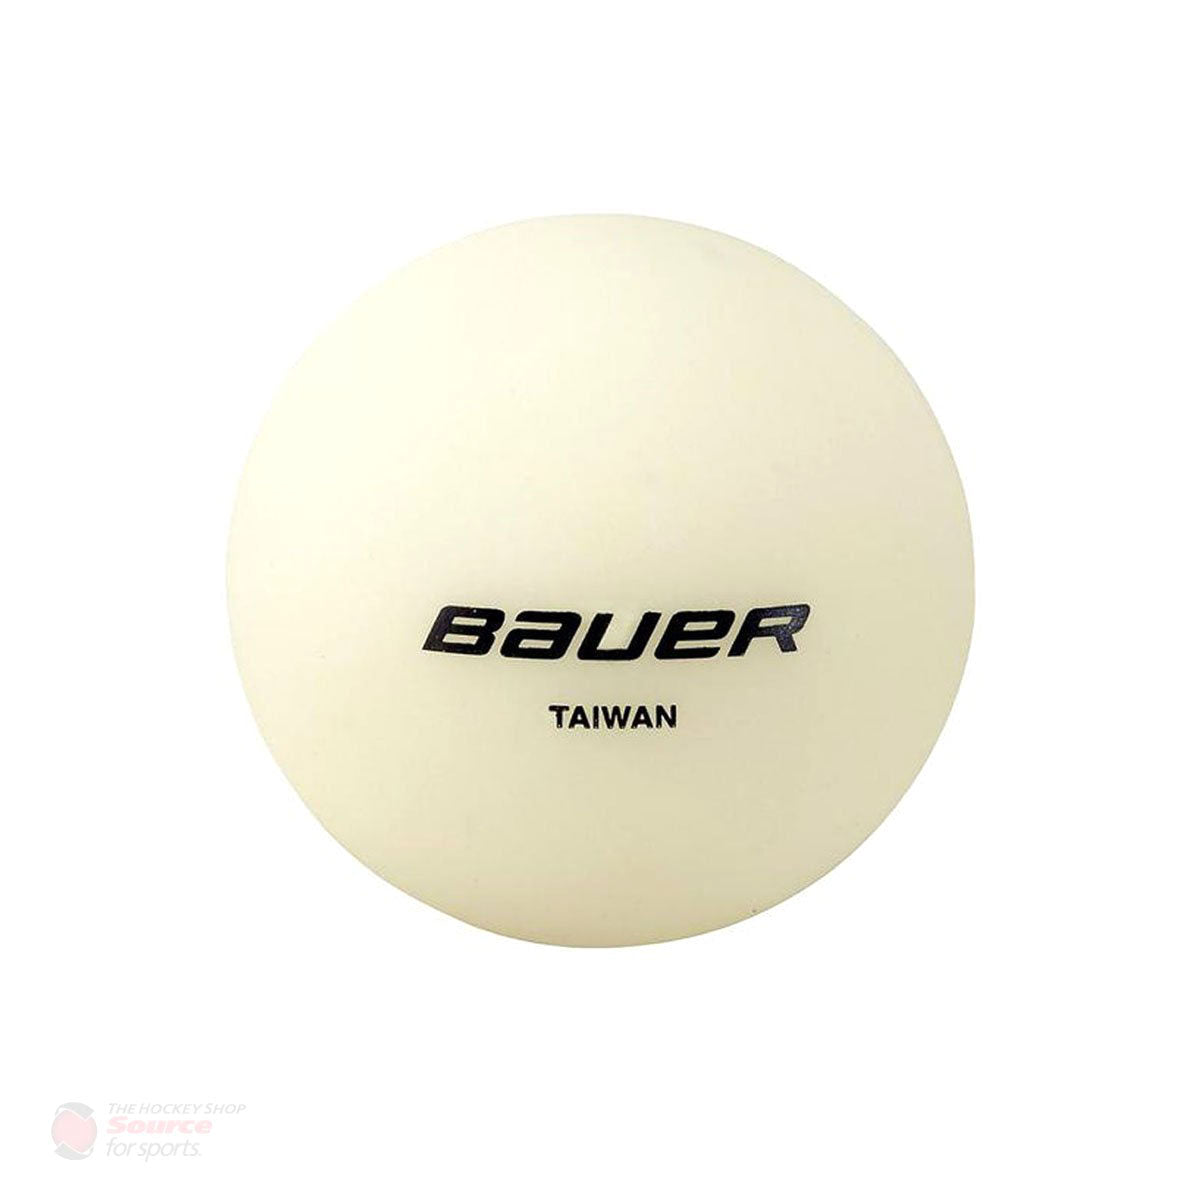 Bauer No Bounce Hockey Ball - Glow in the Dark